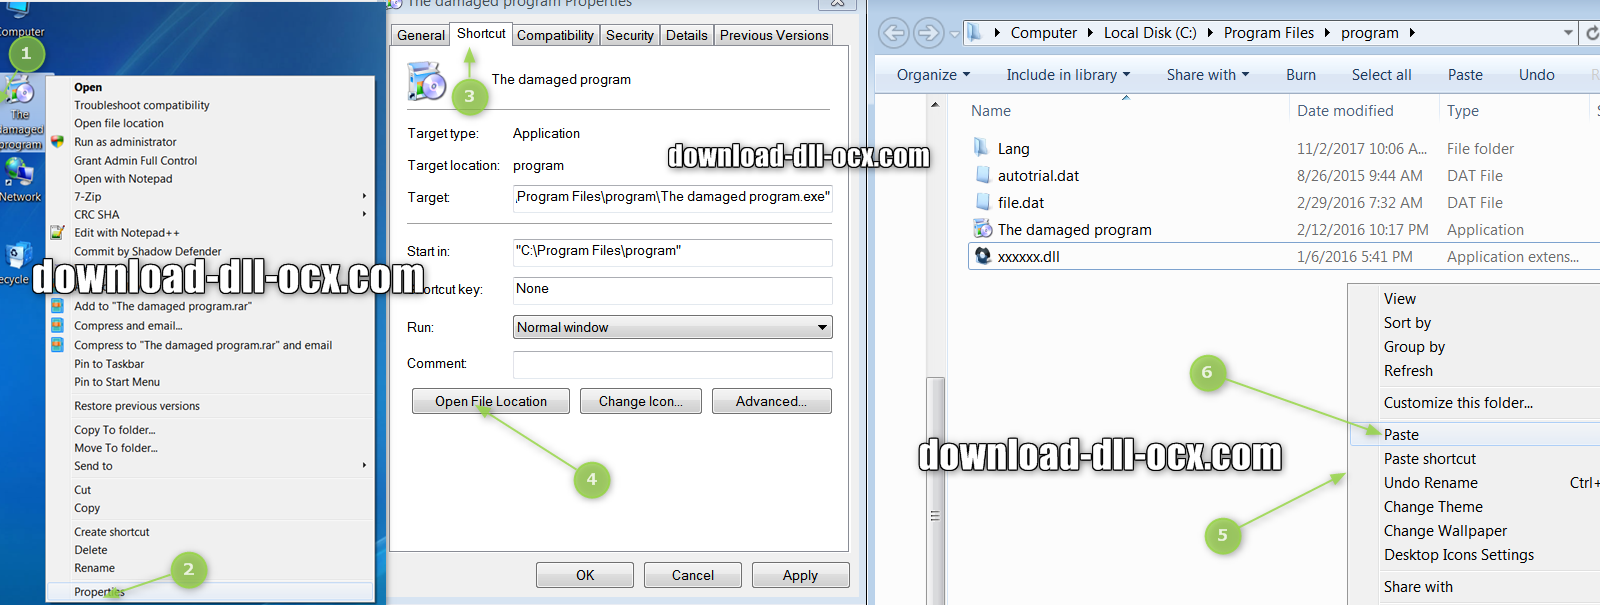 how to install CDDBRealControl.dll file? for fix missing